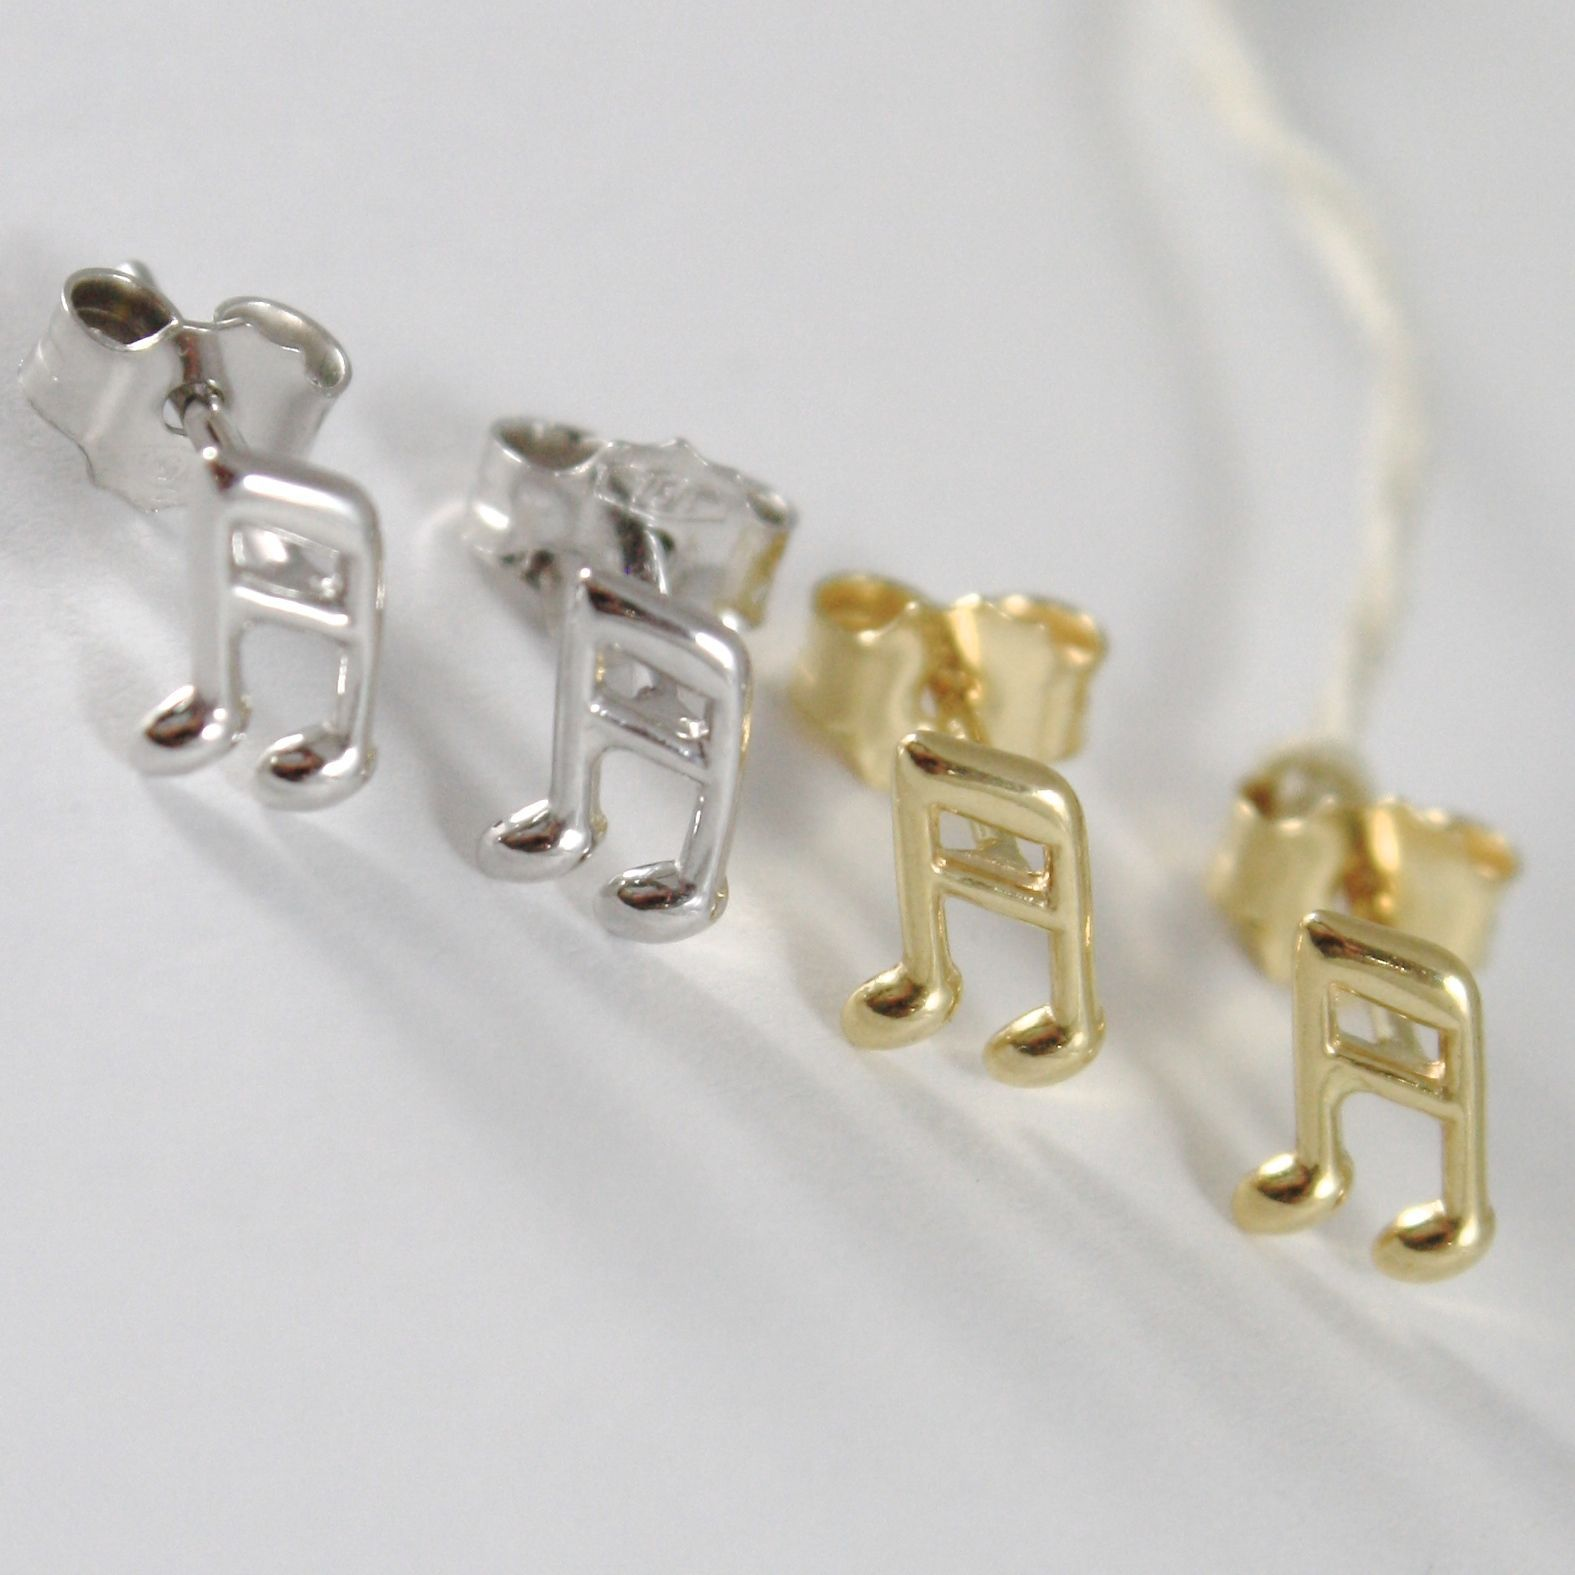 YELLOW GOLD EARRINGS 0,5 WHITE 750 18K, MUSICAL NOTE, LENGTH 0.7 CM